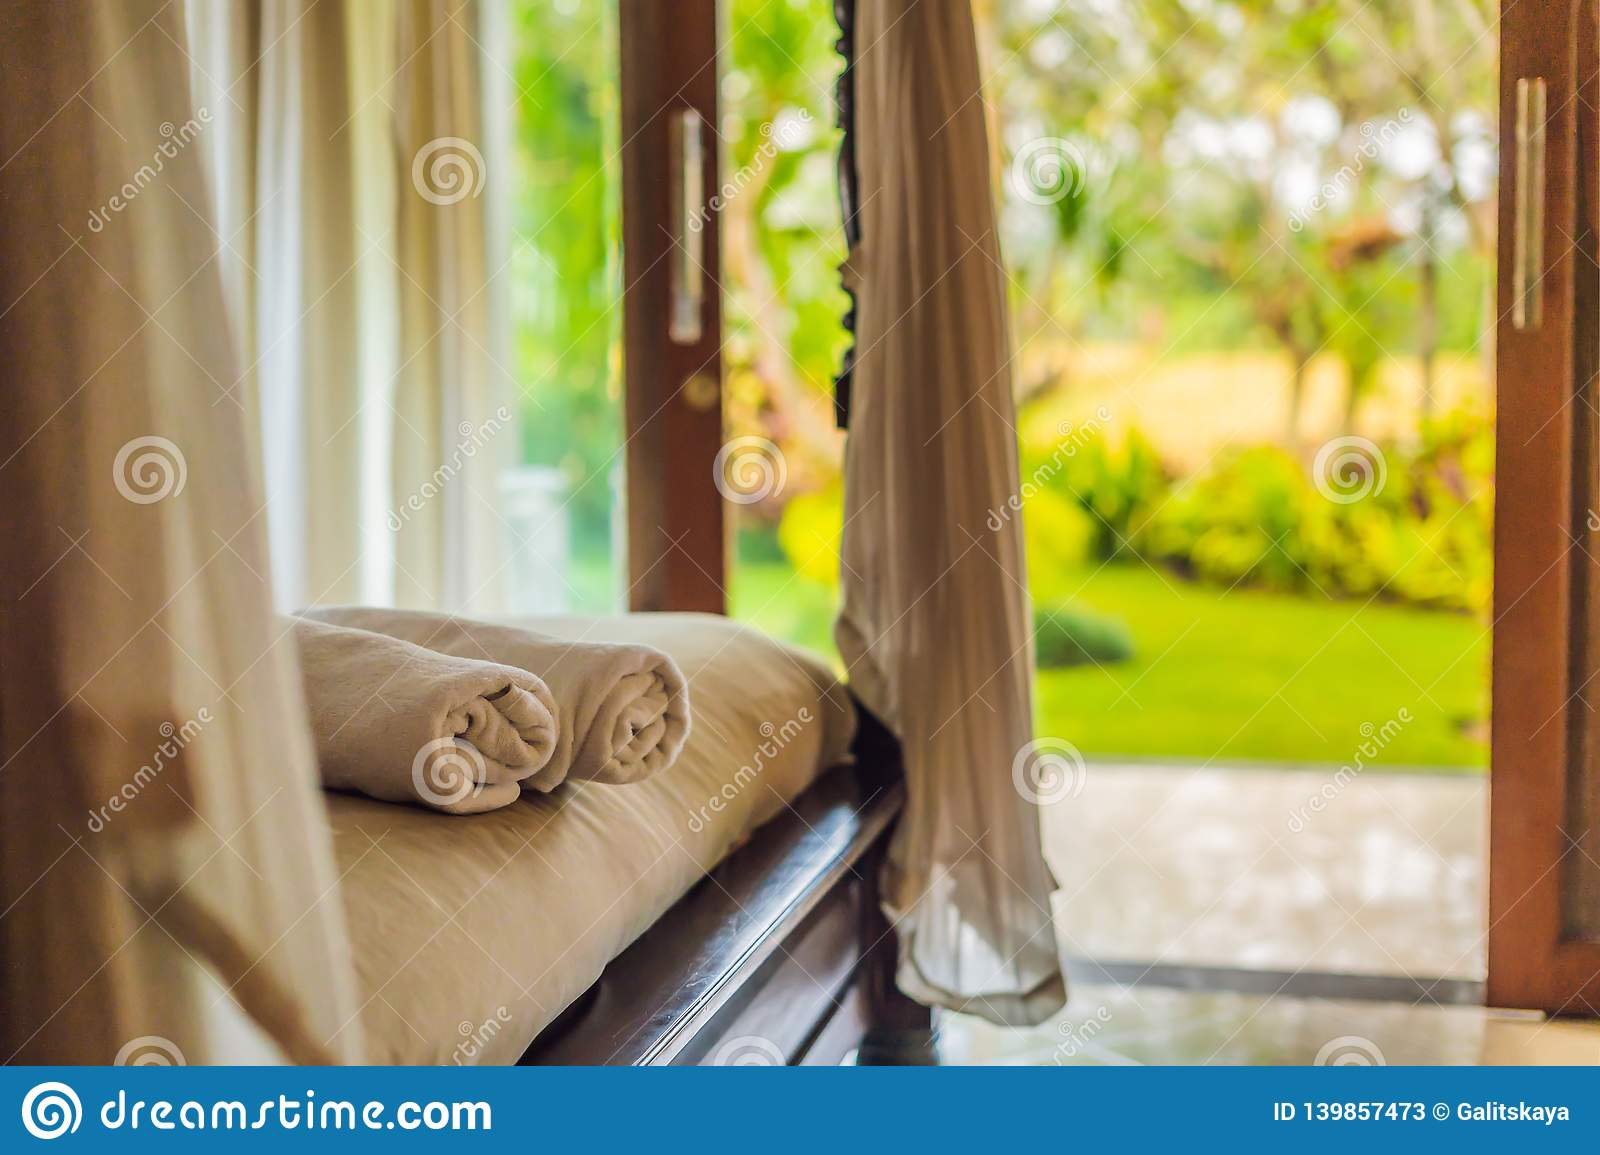 Beautiful room in villa, towel on the bed